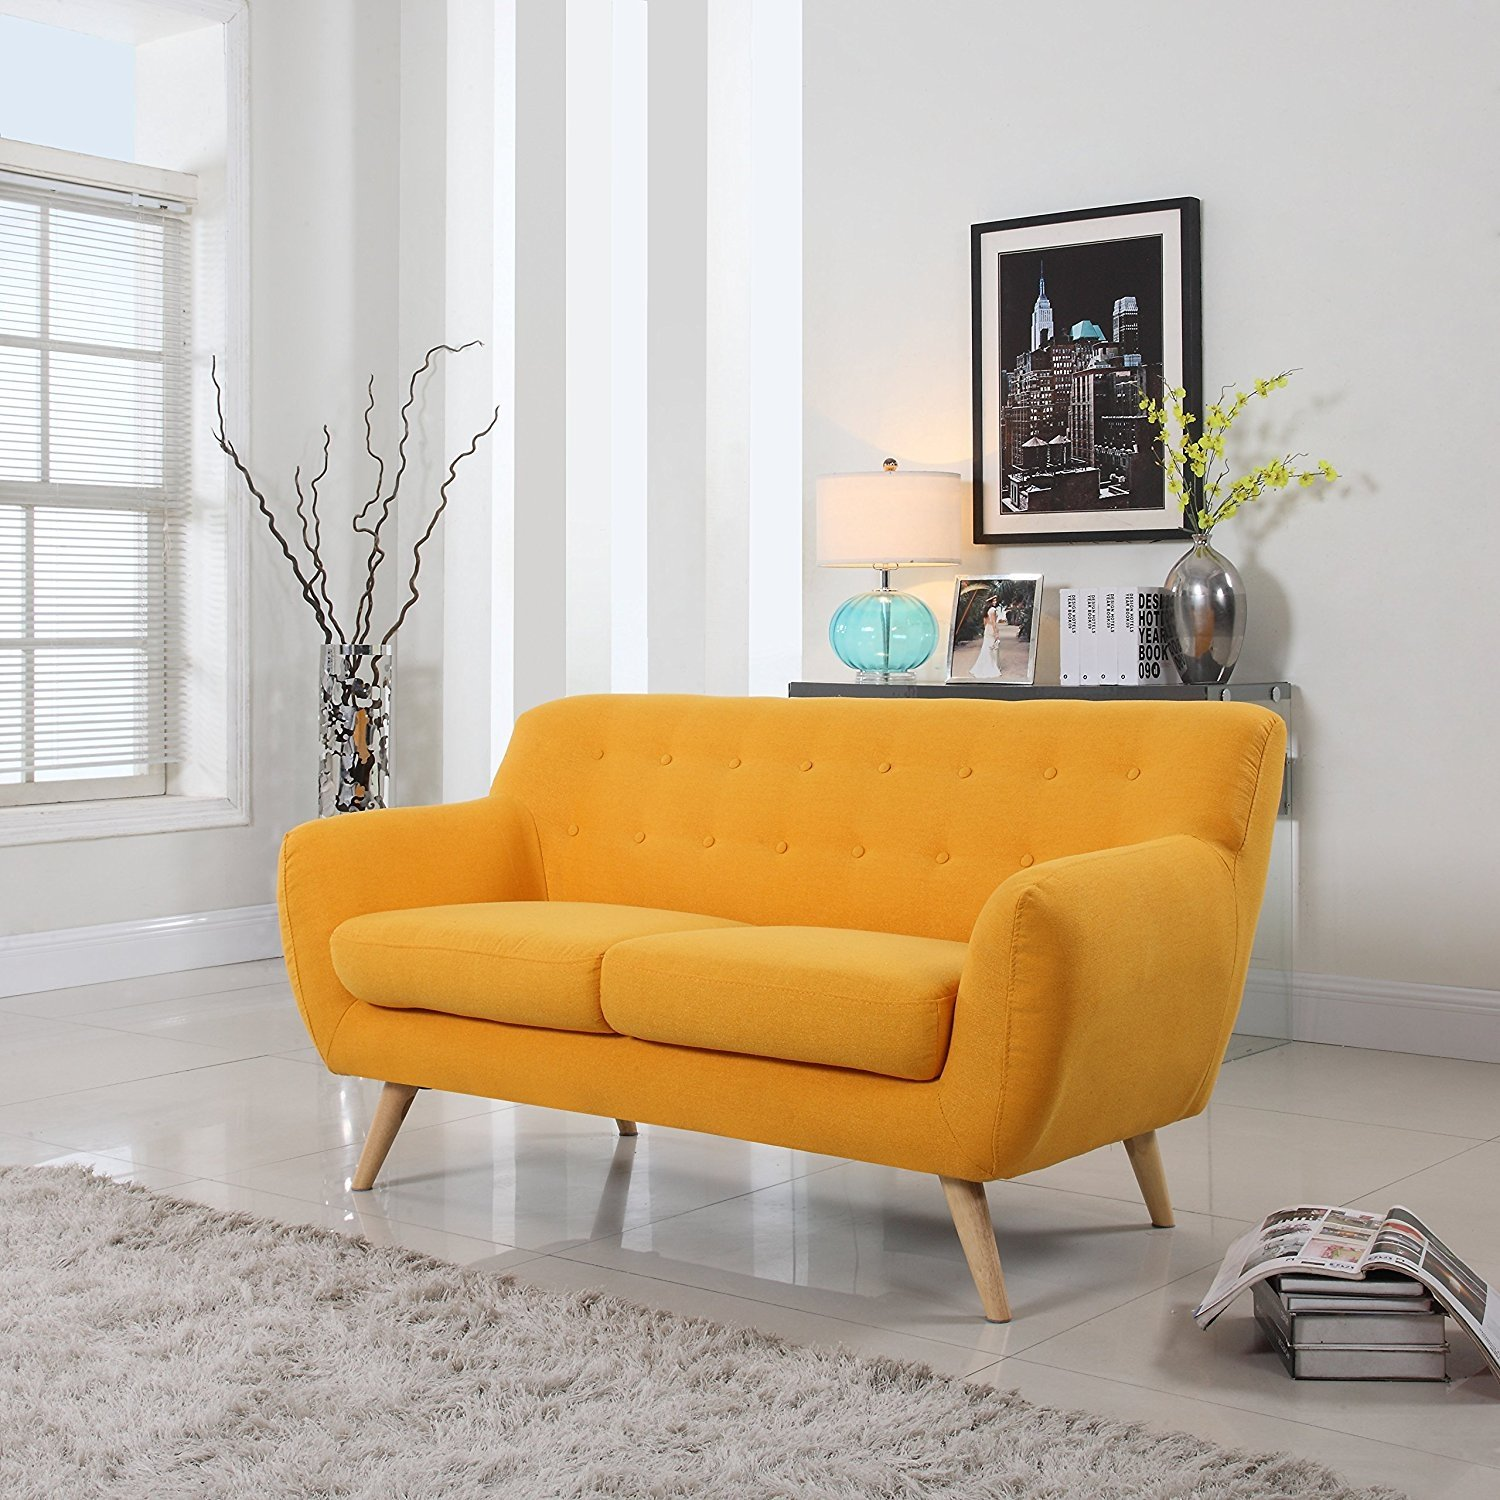 Details about Mid Century Modern Style Sofa / Love Seat Red, Grey, Yellow,  Blue - 2 Seat, 3...